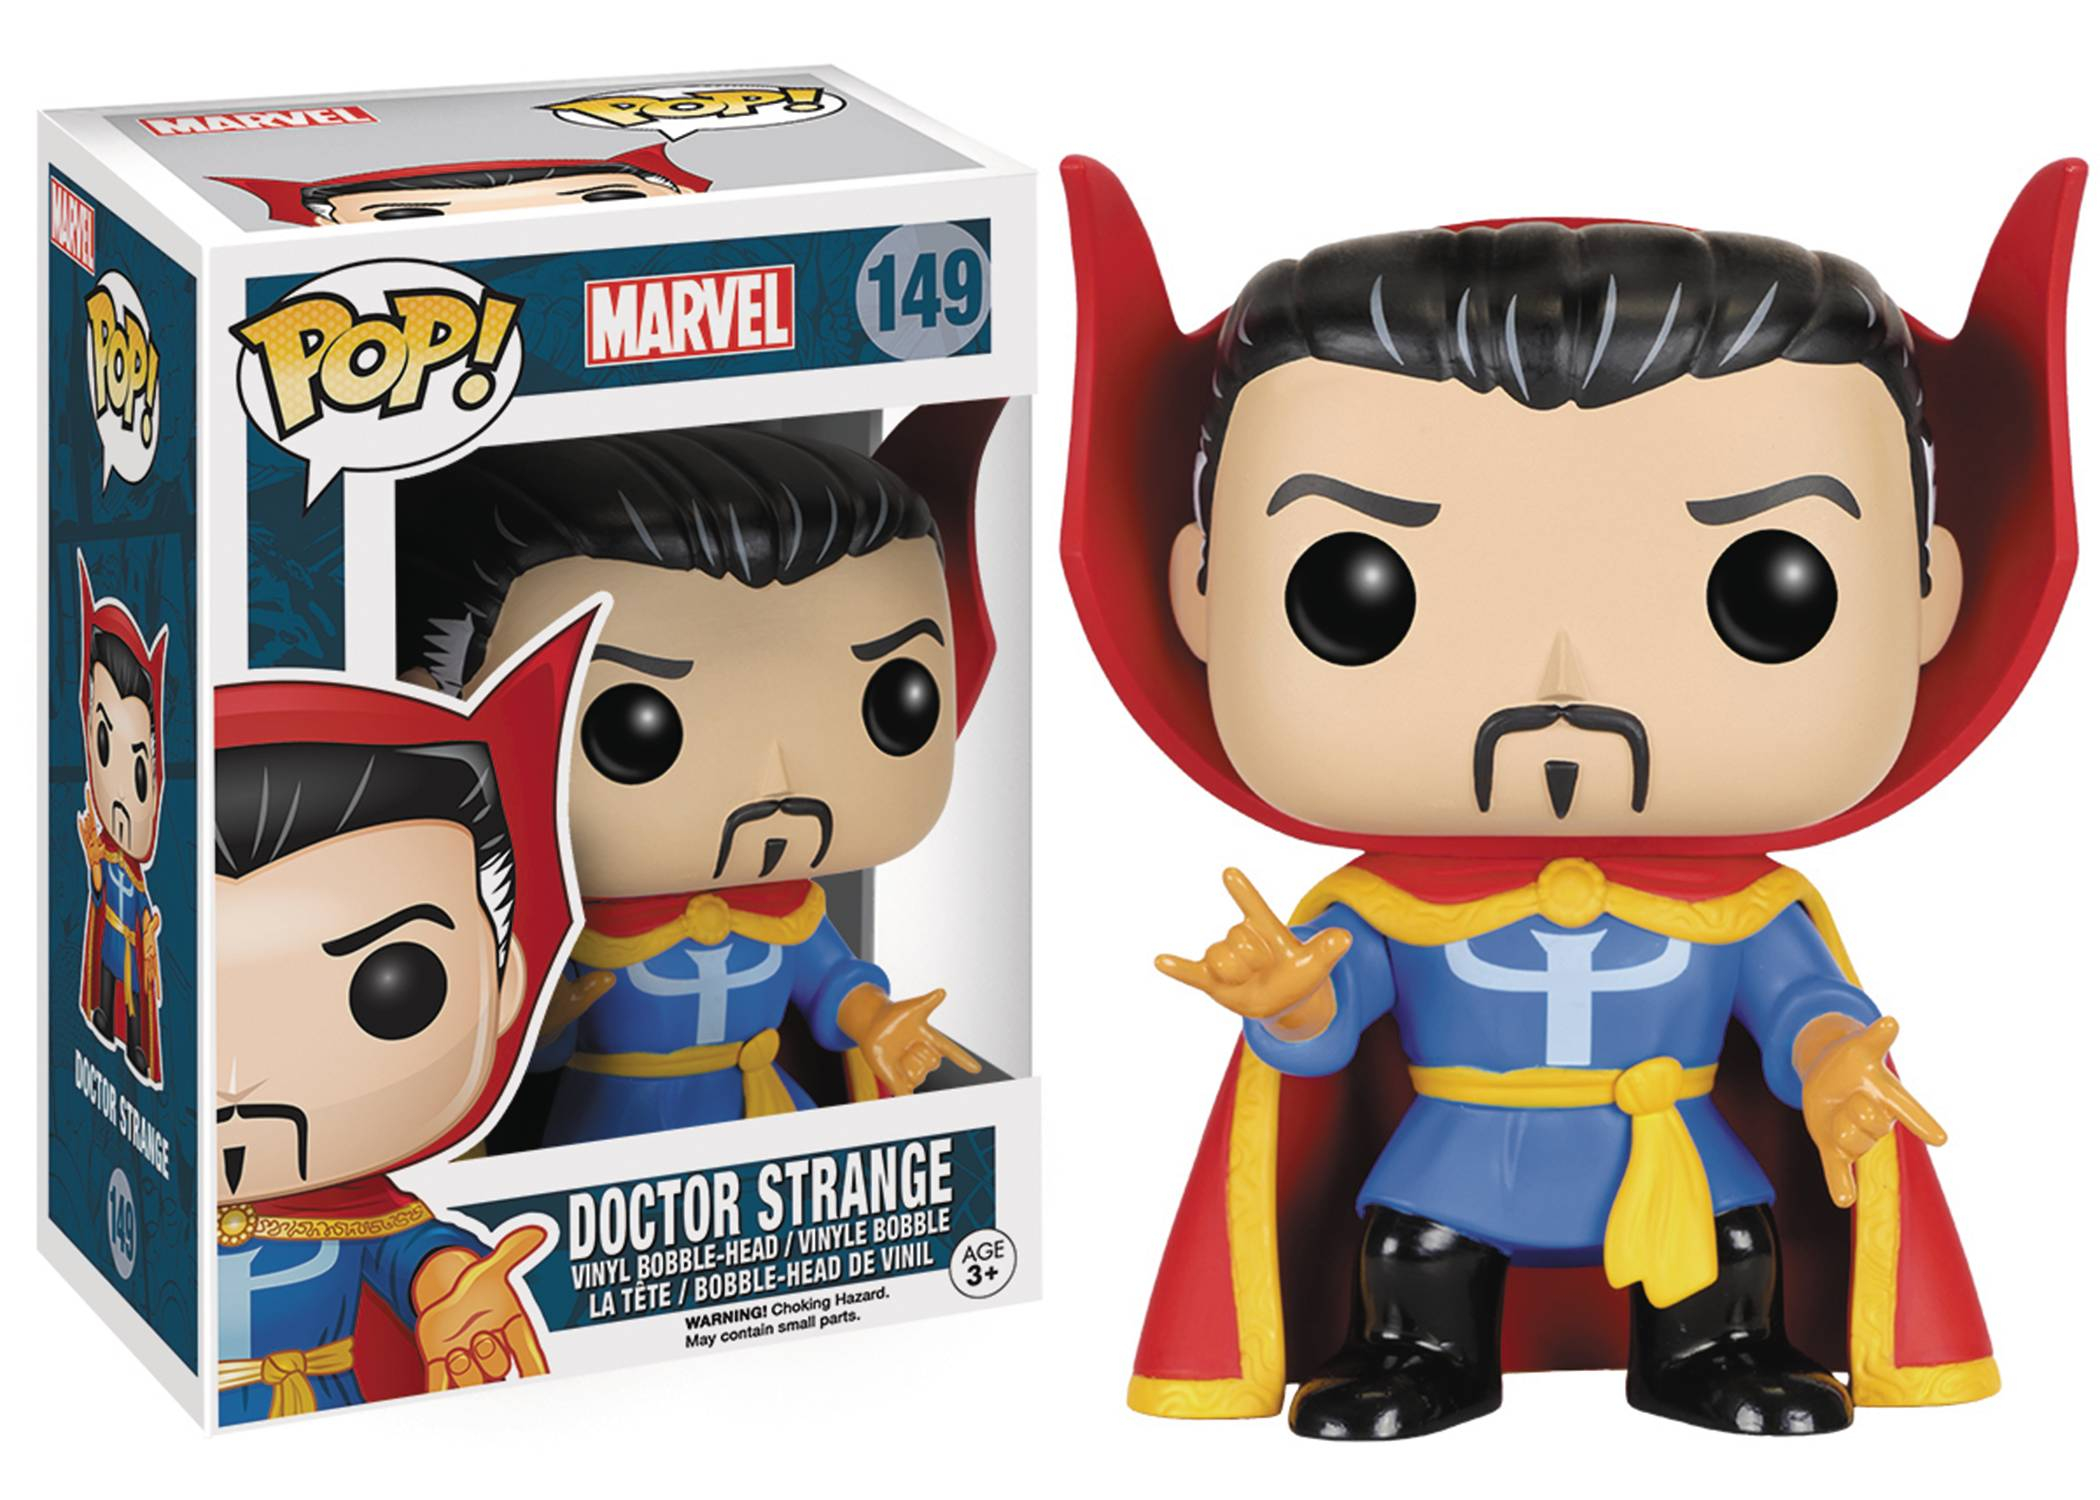 POP MARVEL DOCTOR STRANGE CLASSIC VINYL FIG